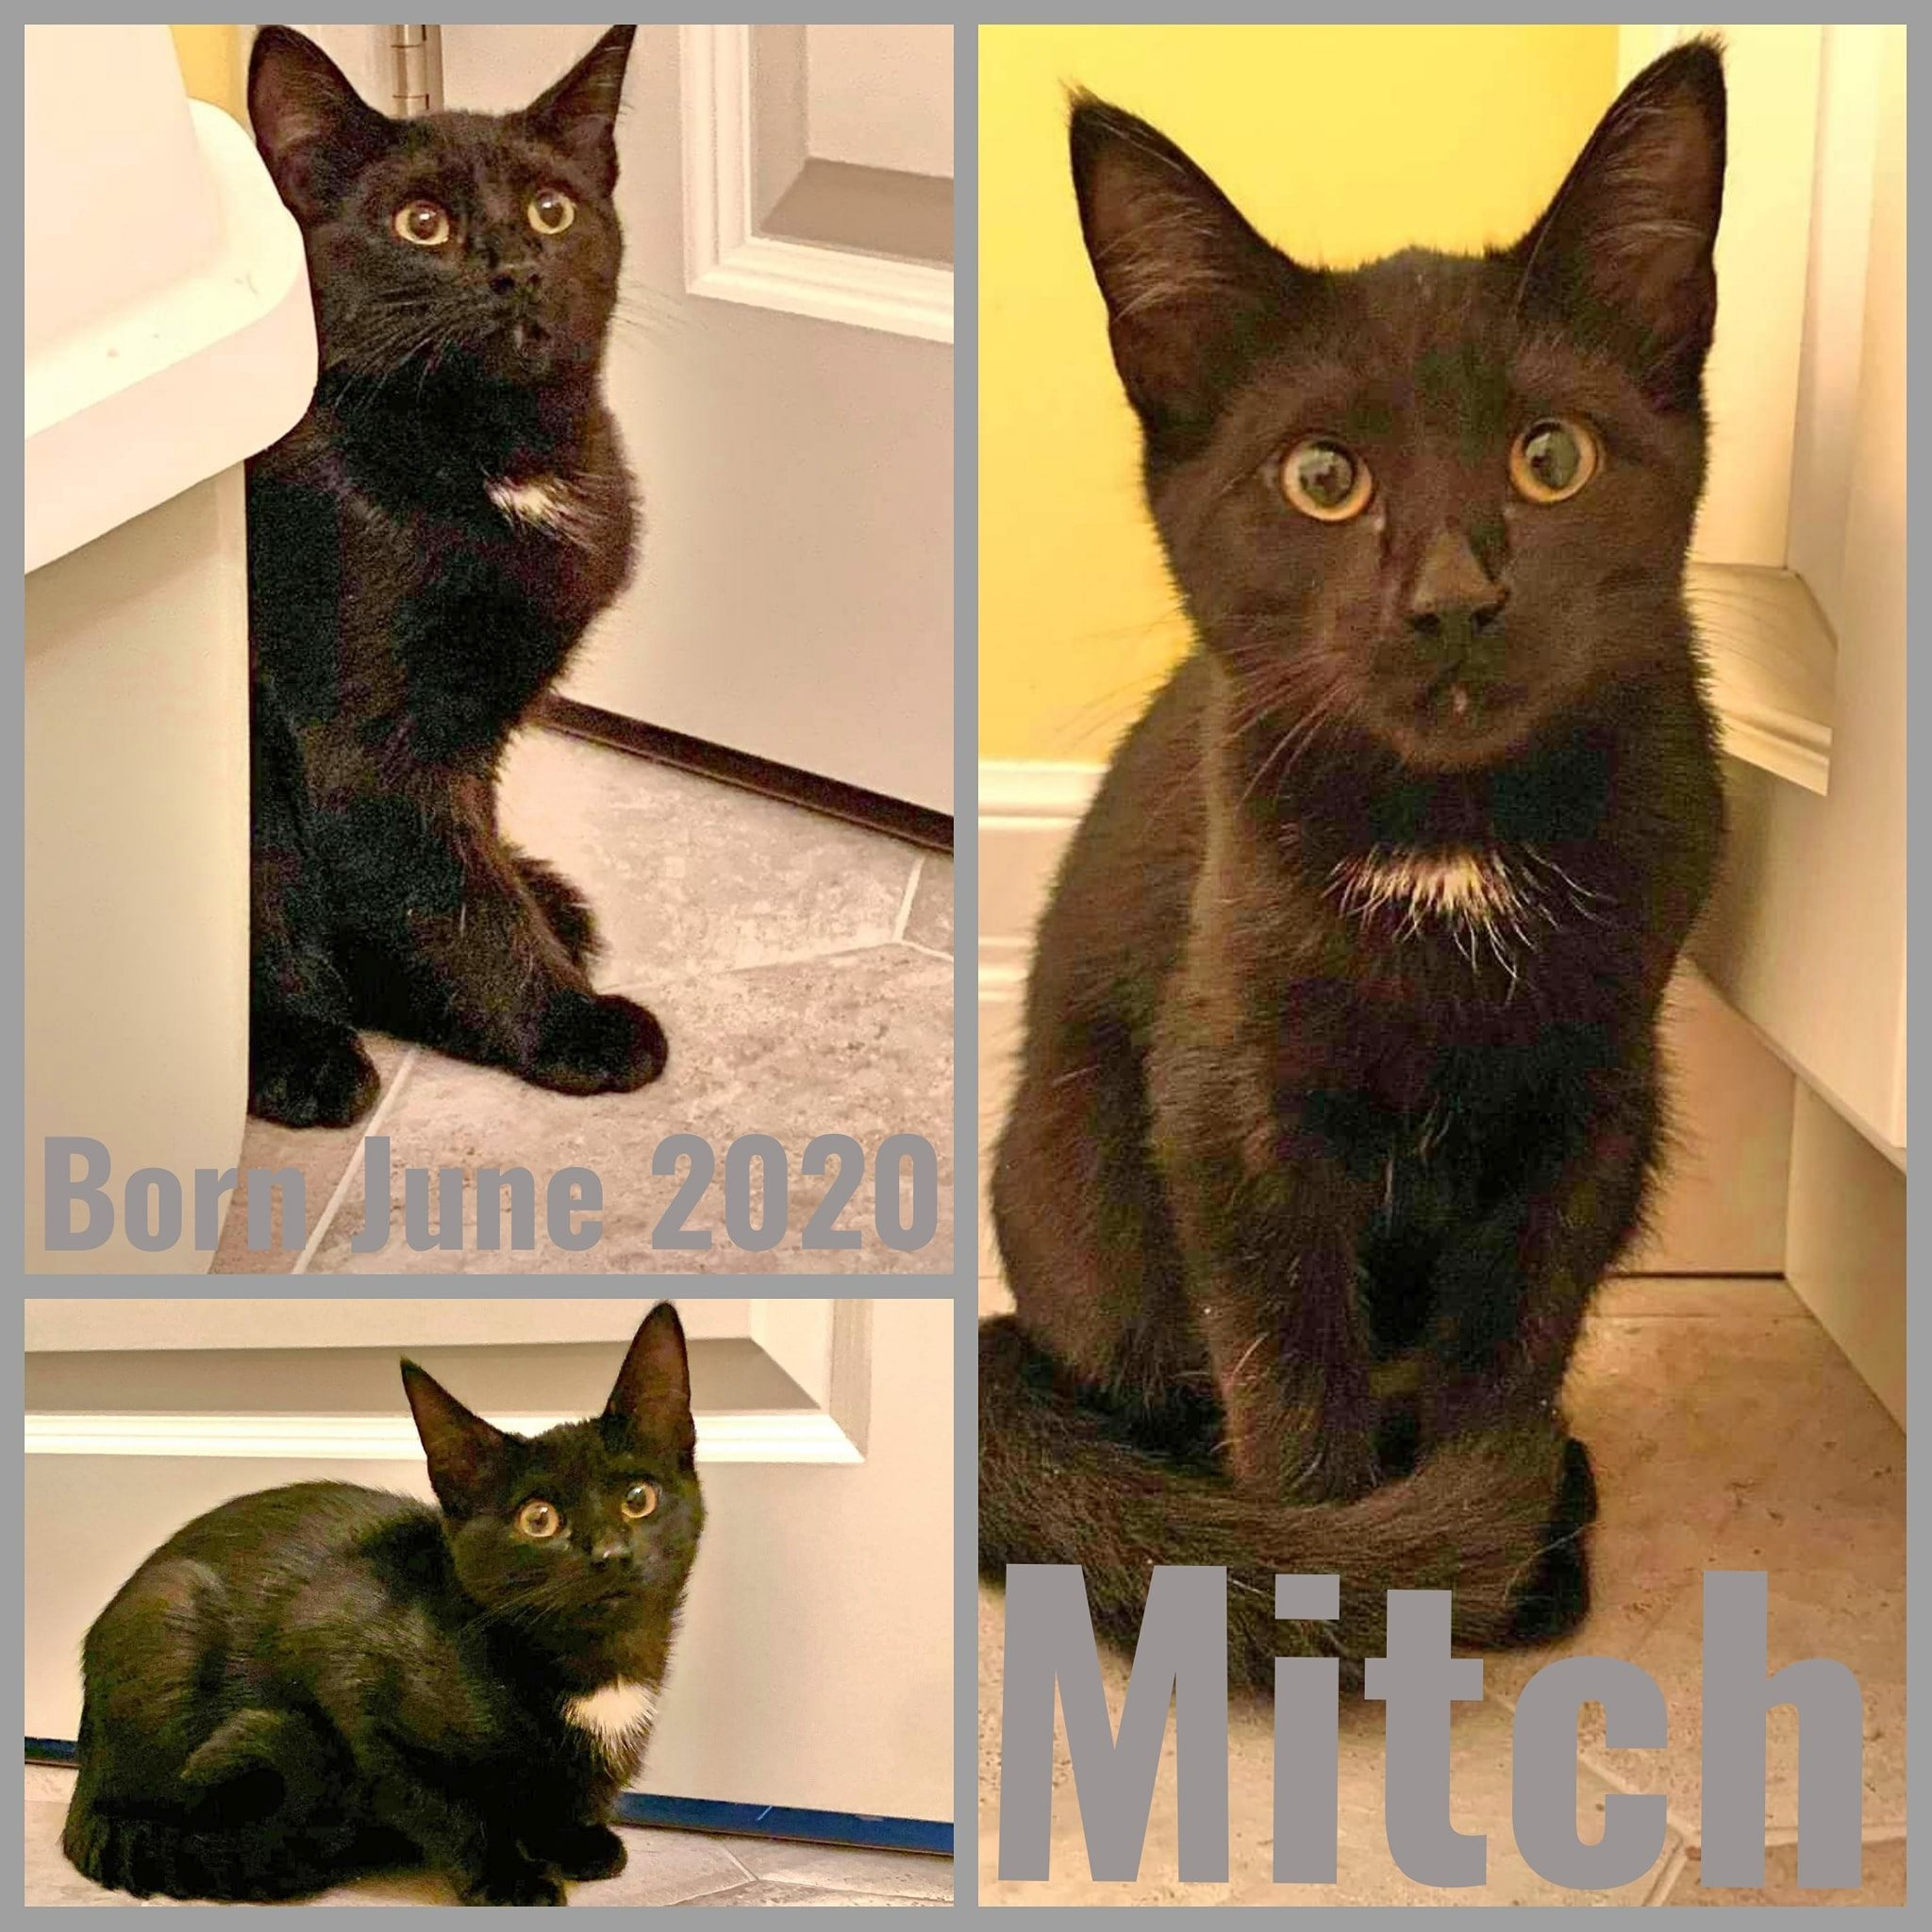 Mitch-Male-Born in June 2020